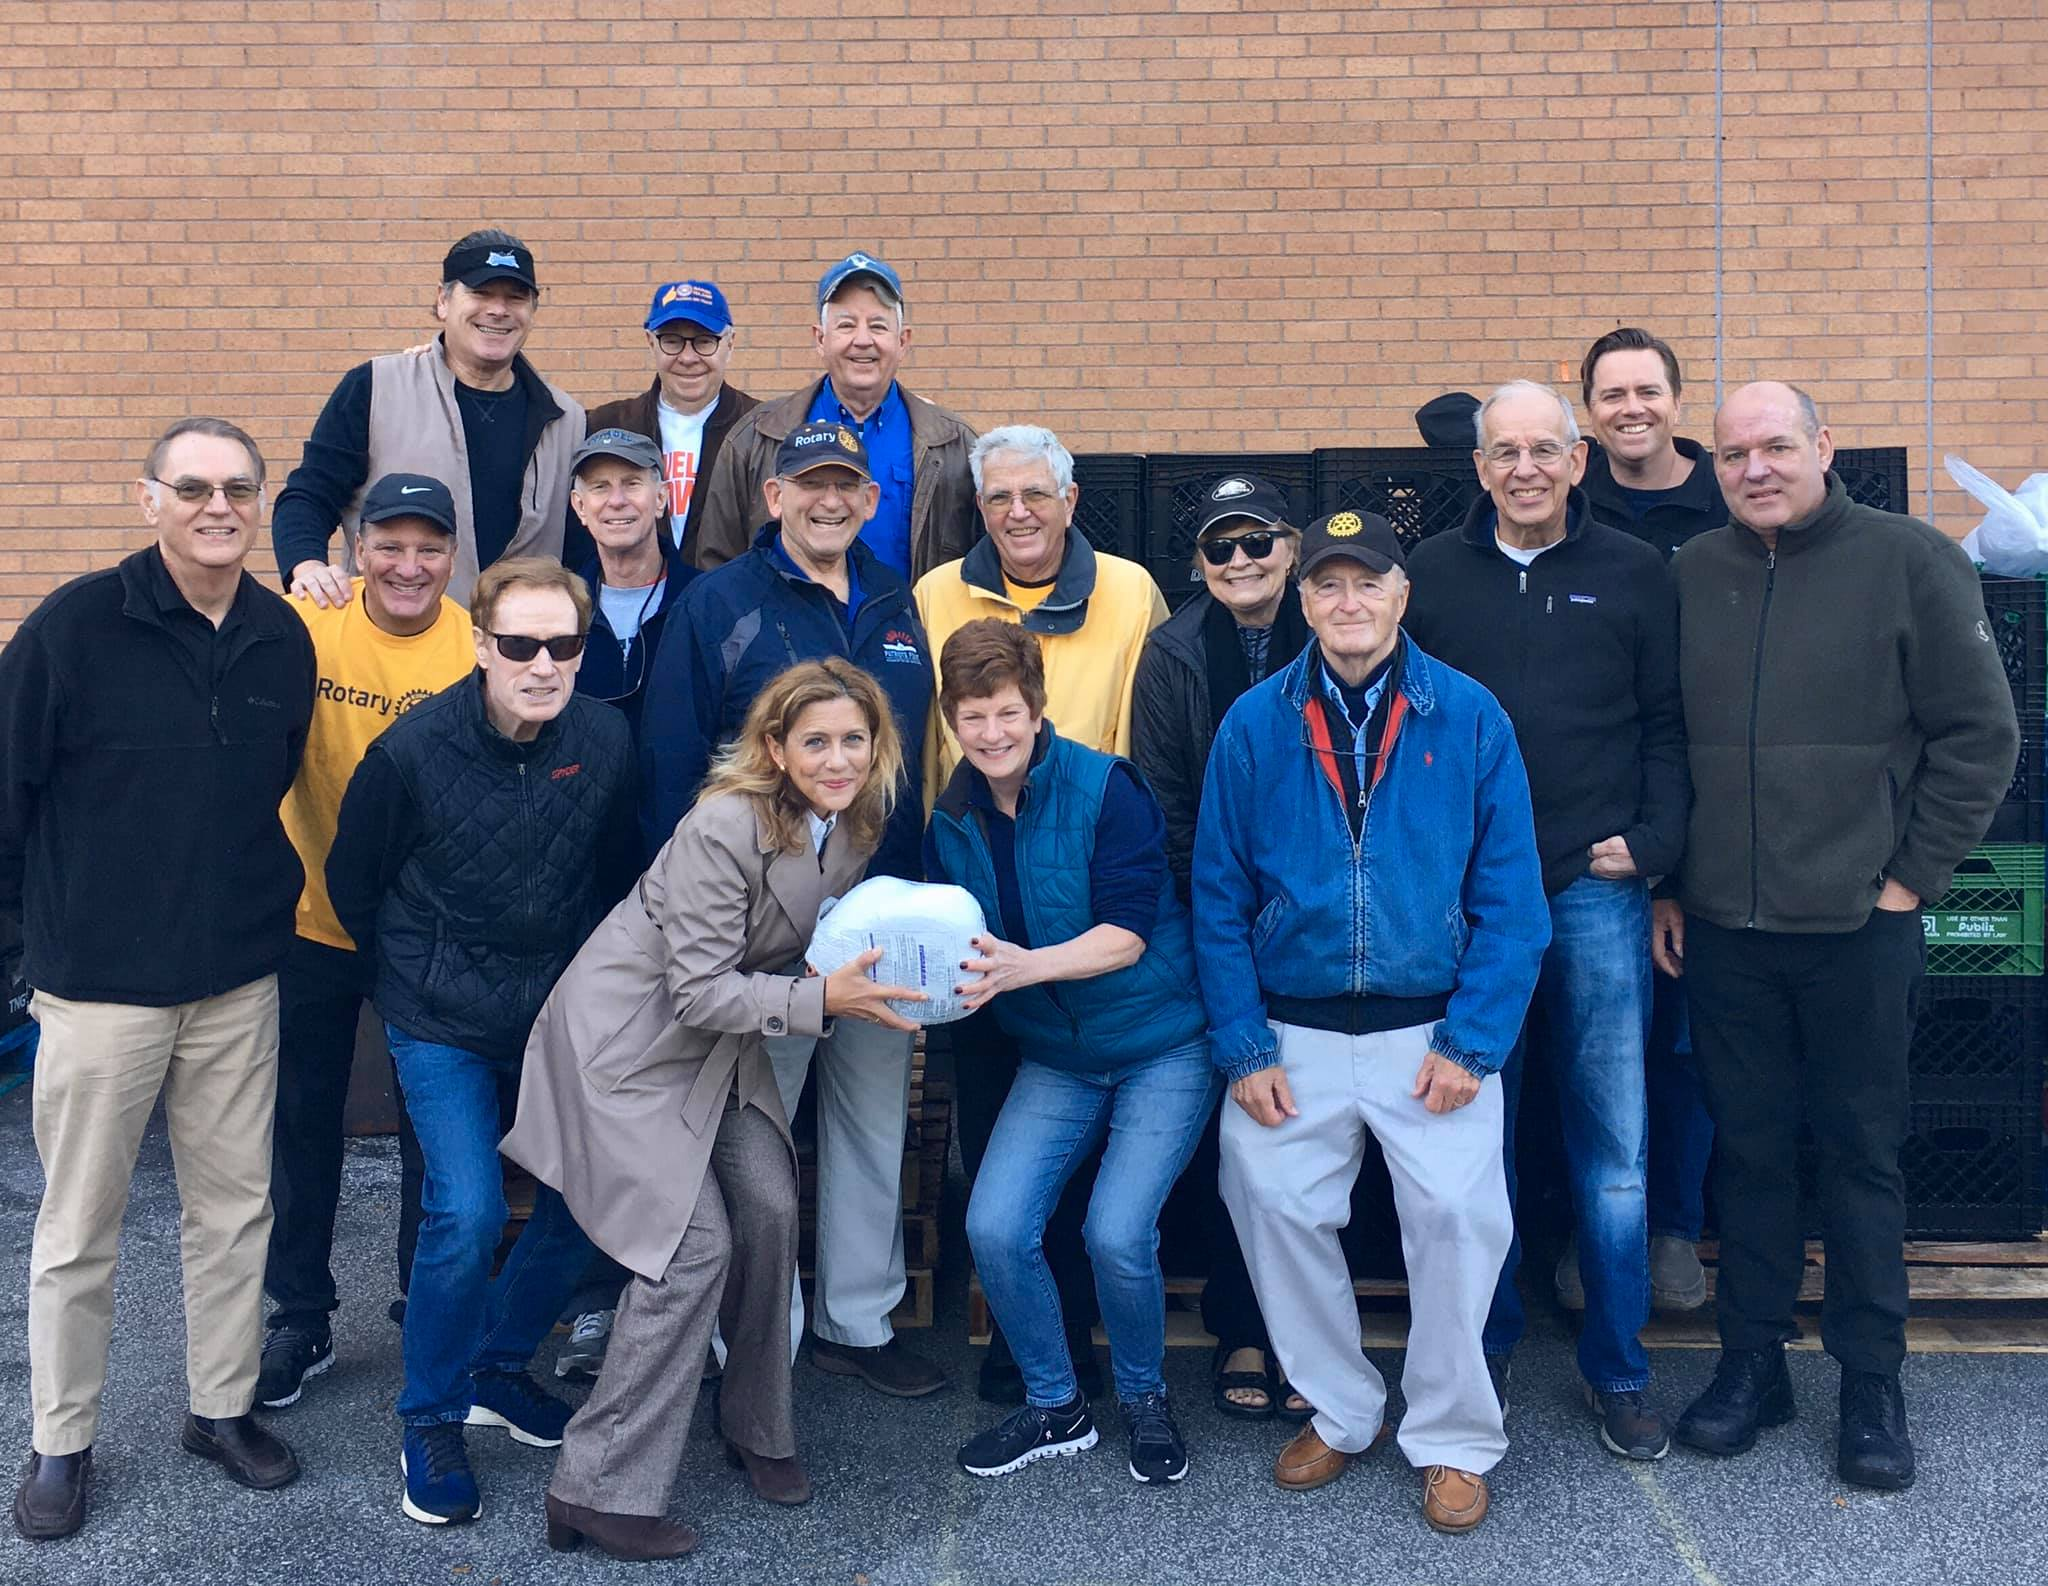 Members of the Rotary Club delivered 171 turkey meals for the Thanksgiving holiday.